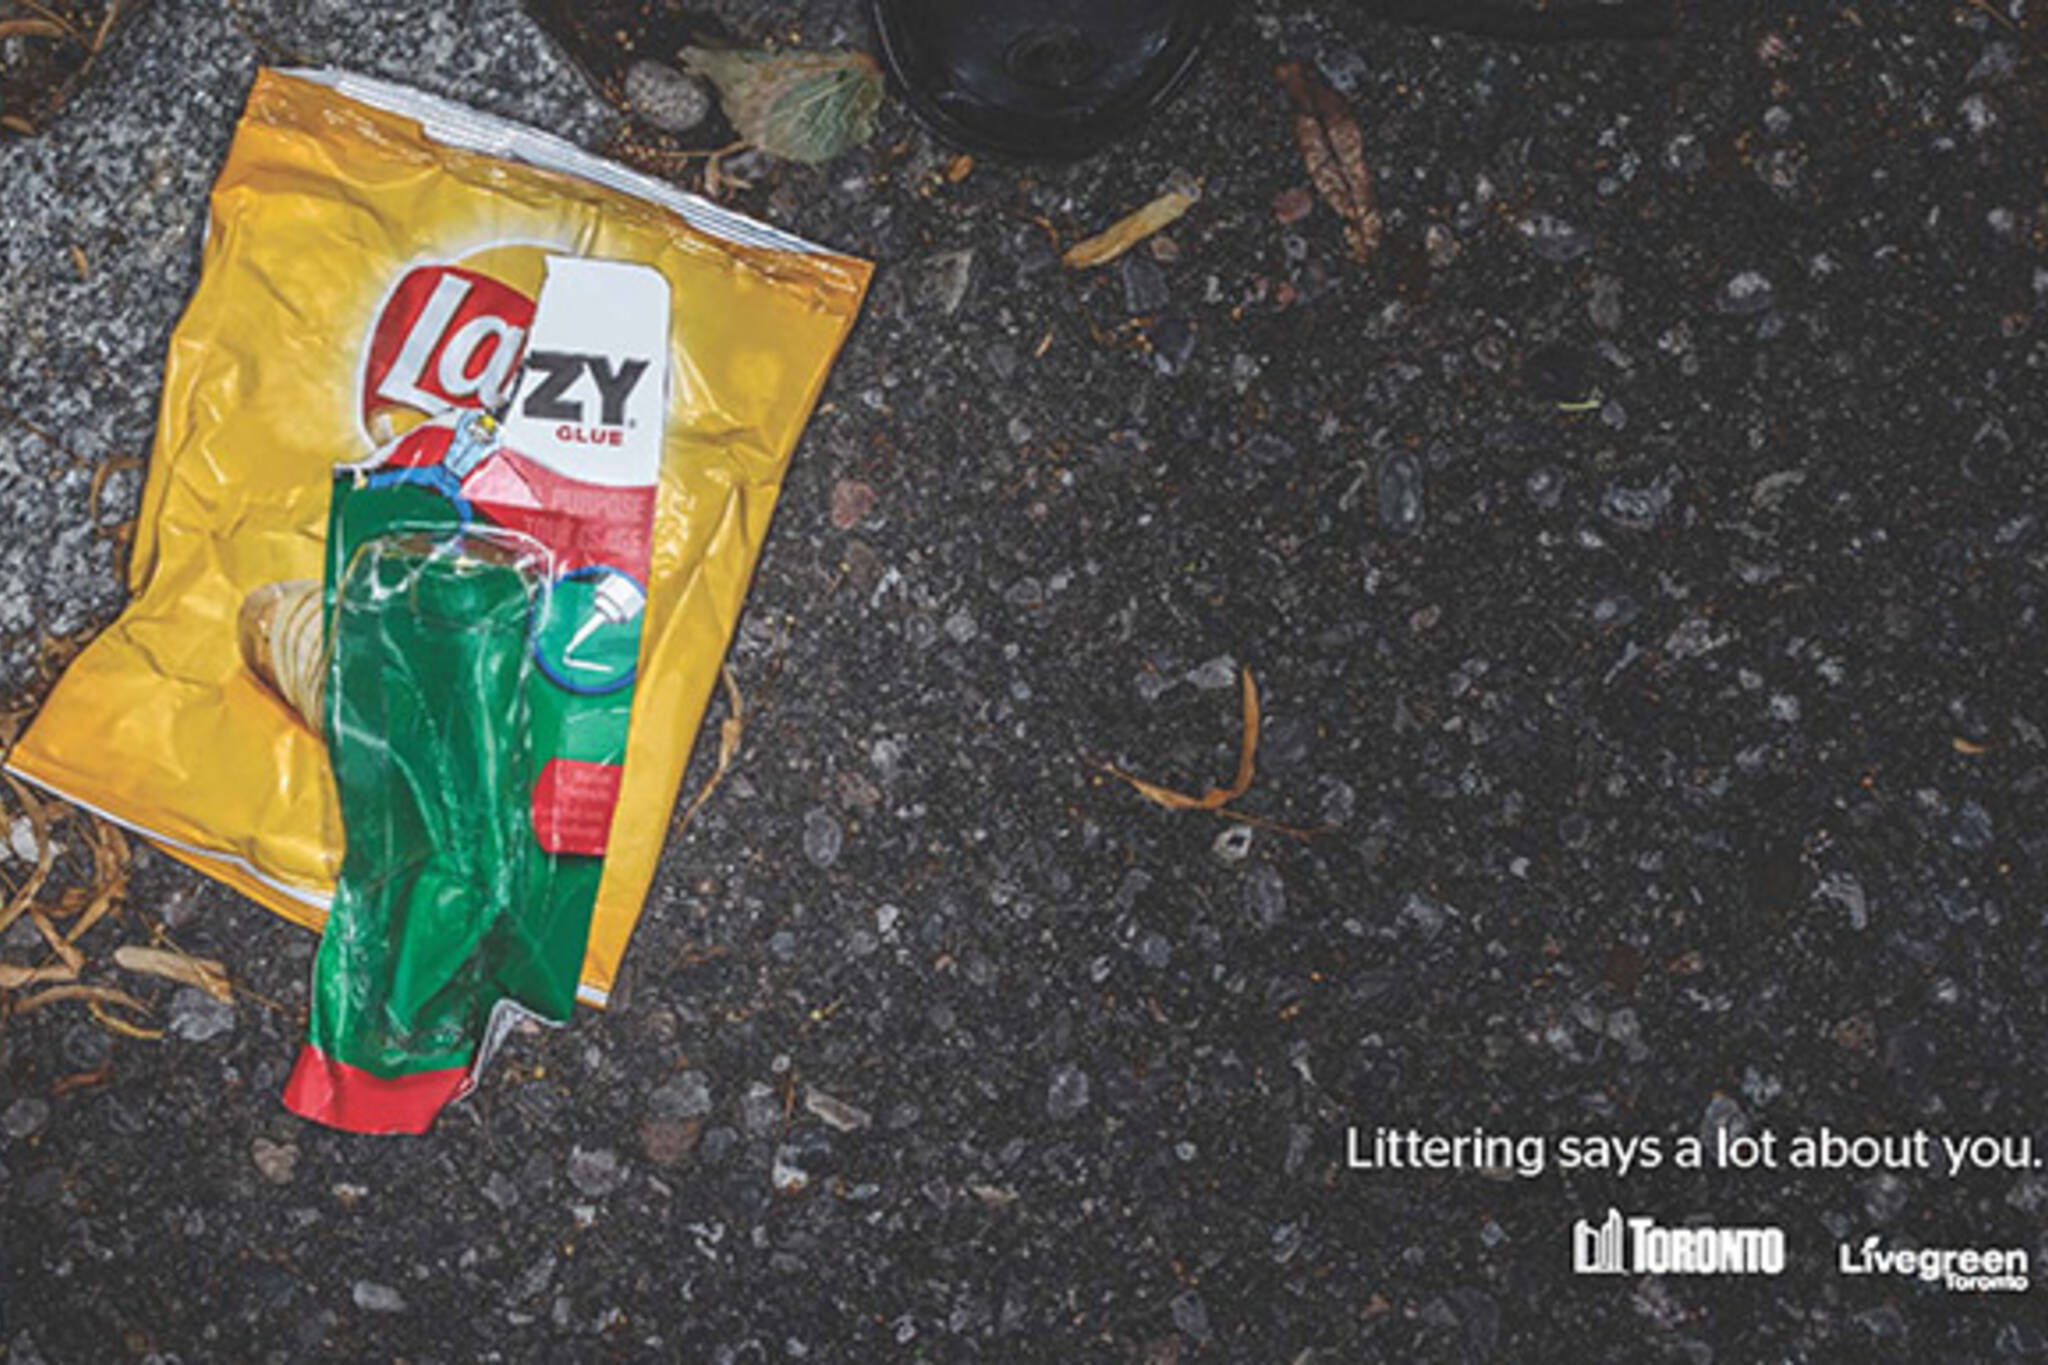 anti litter ads toronto